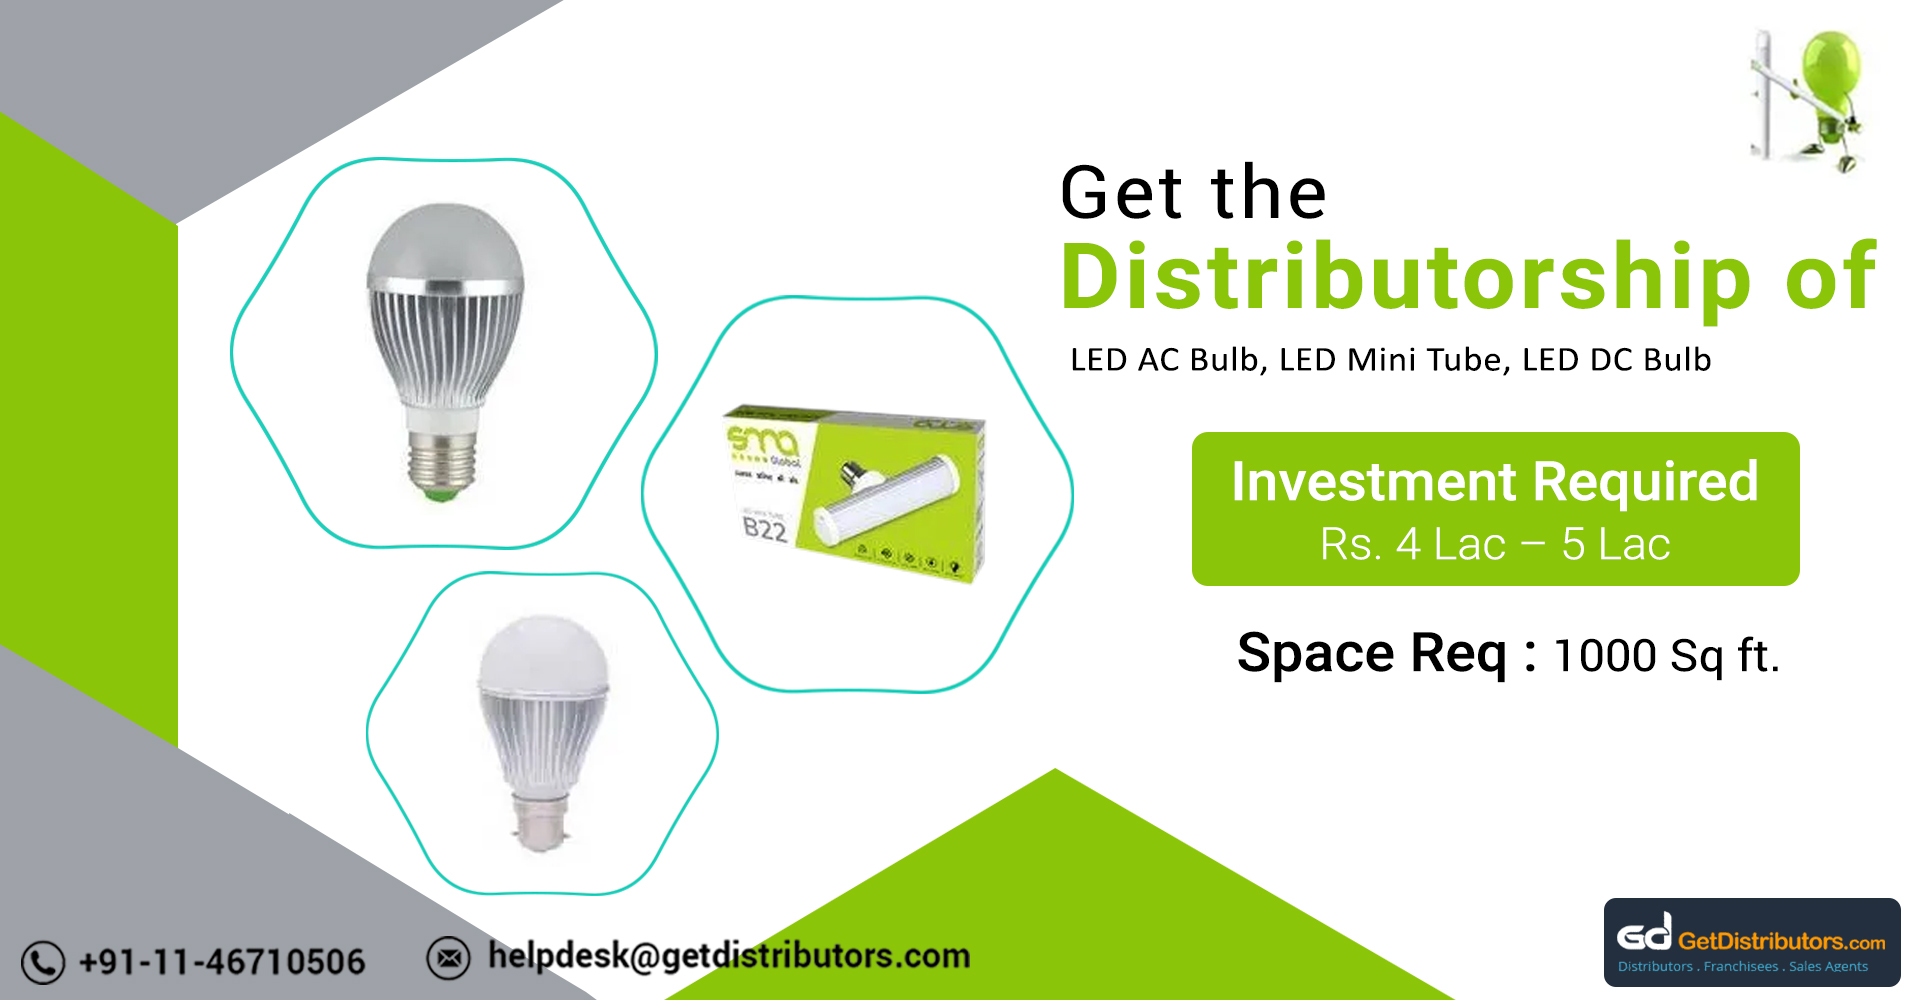 Energy Efficient Lighting Products At Affordable Costs